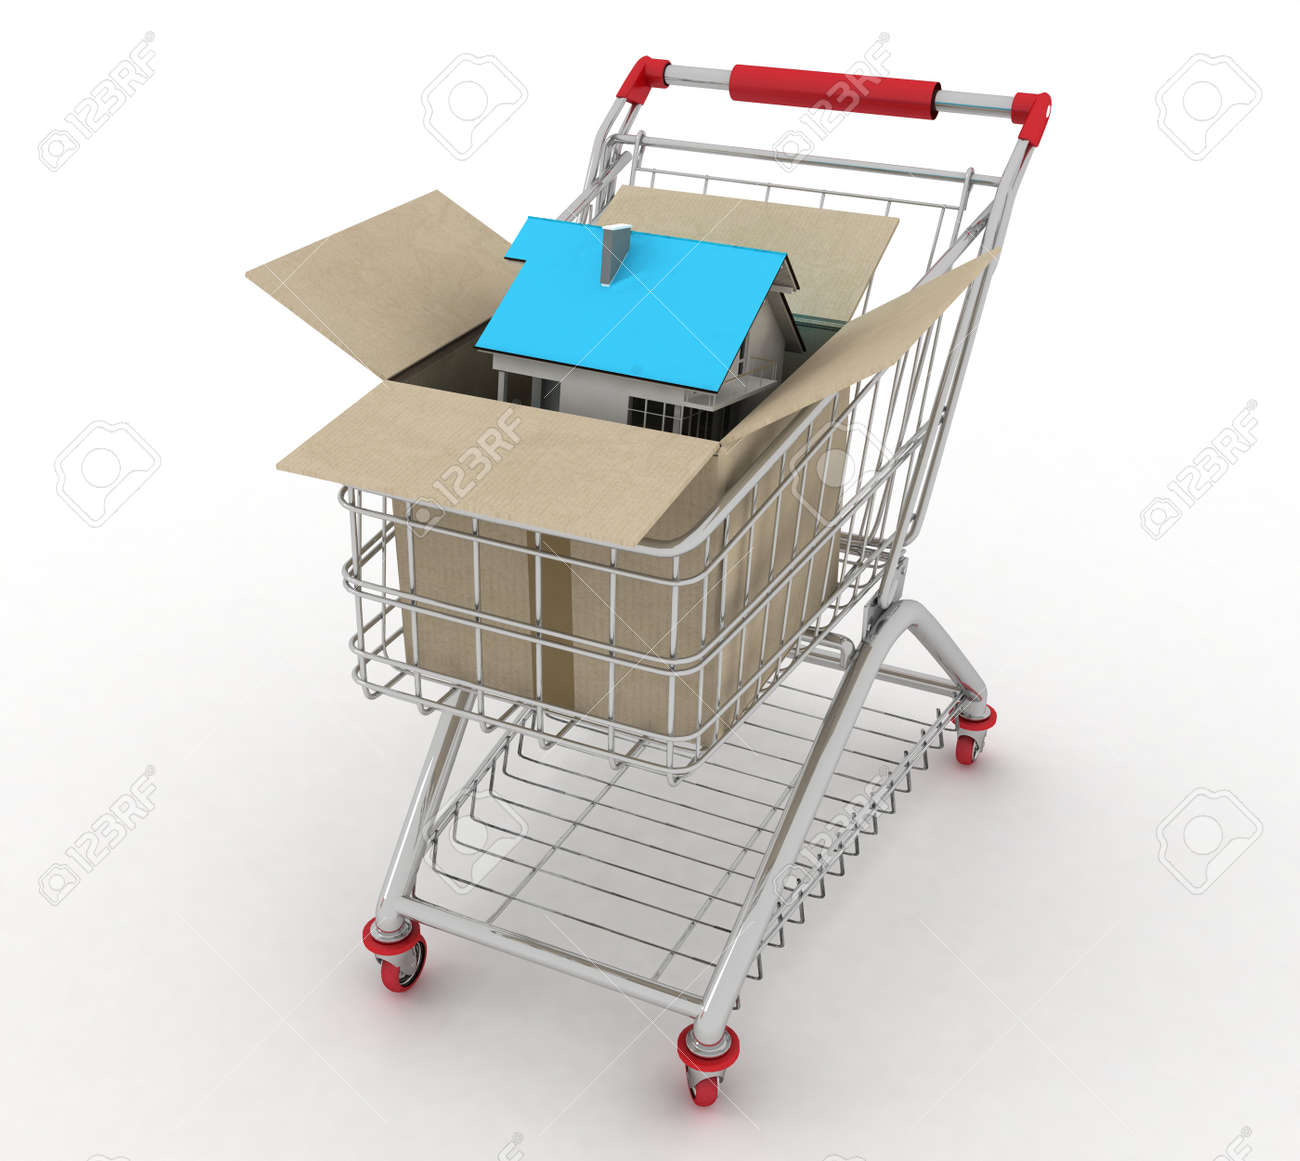 3d model house in a paper shopping box and shopping cart